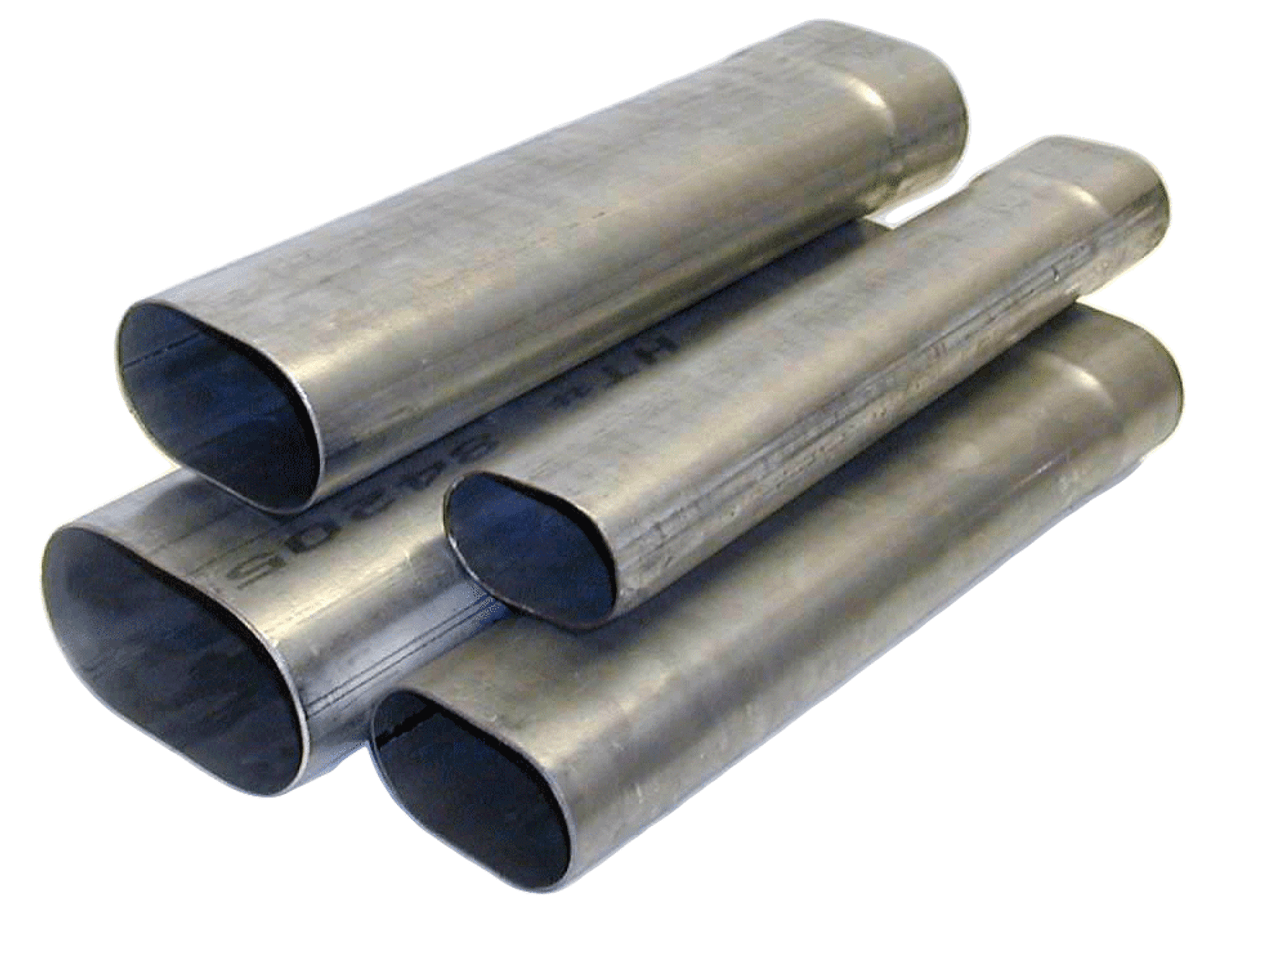 Oval Tubes Straight Lengths, Expanded One End